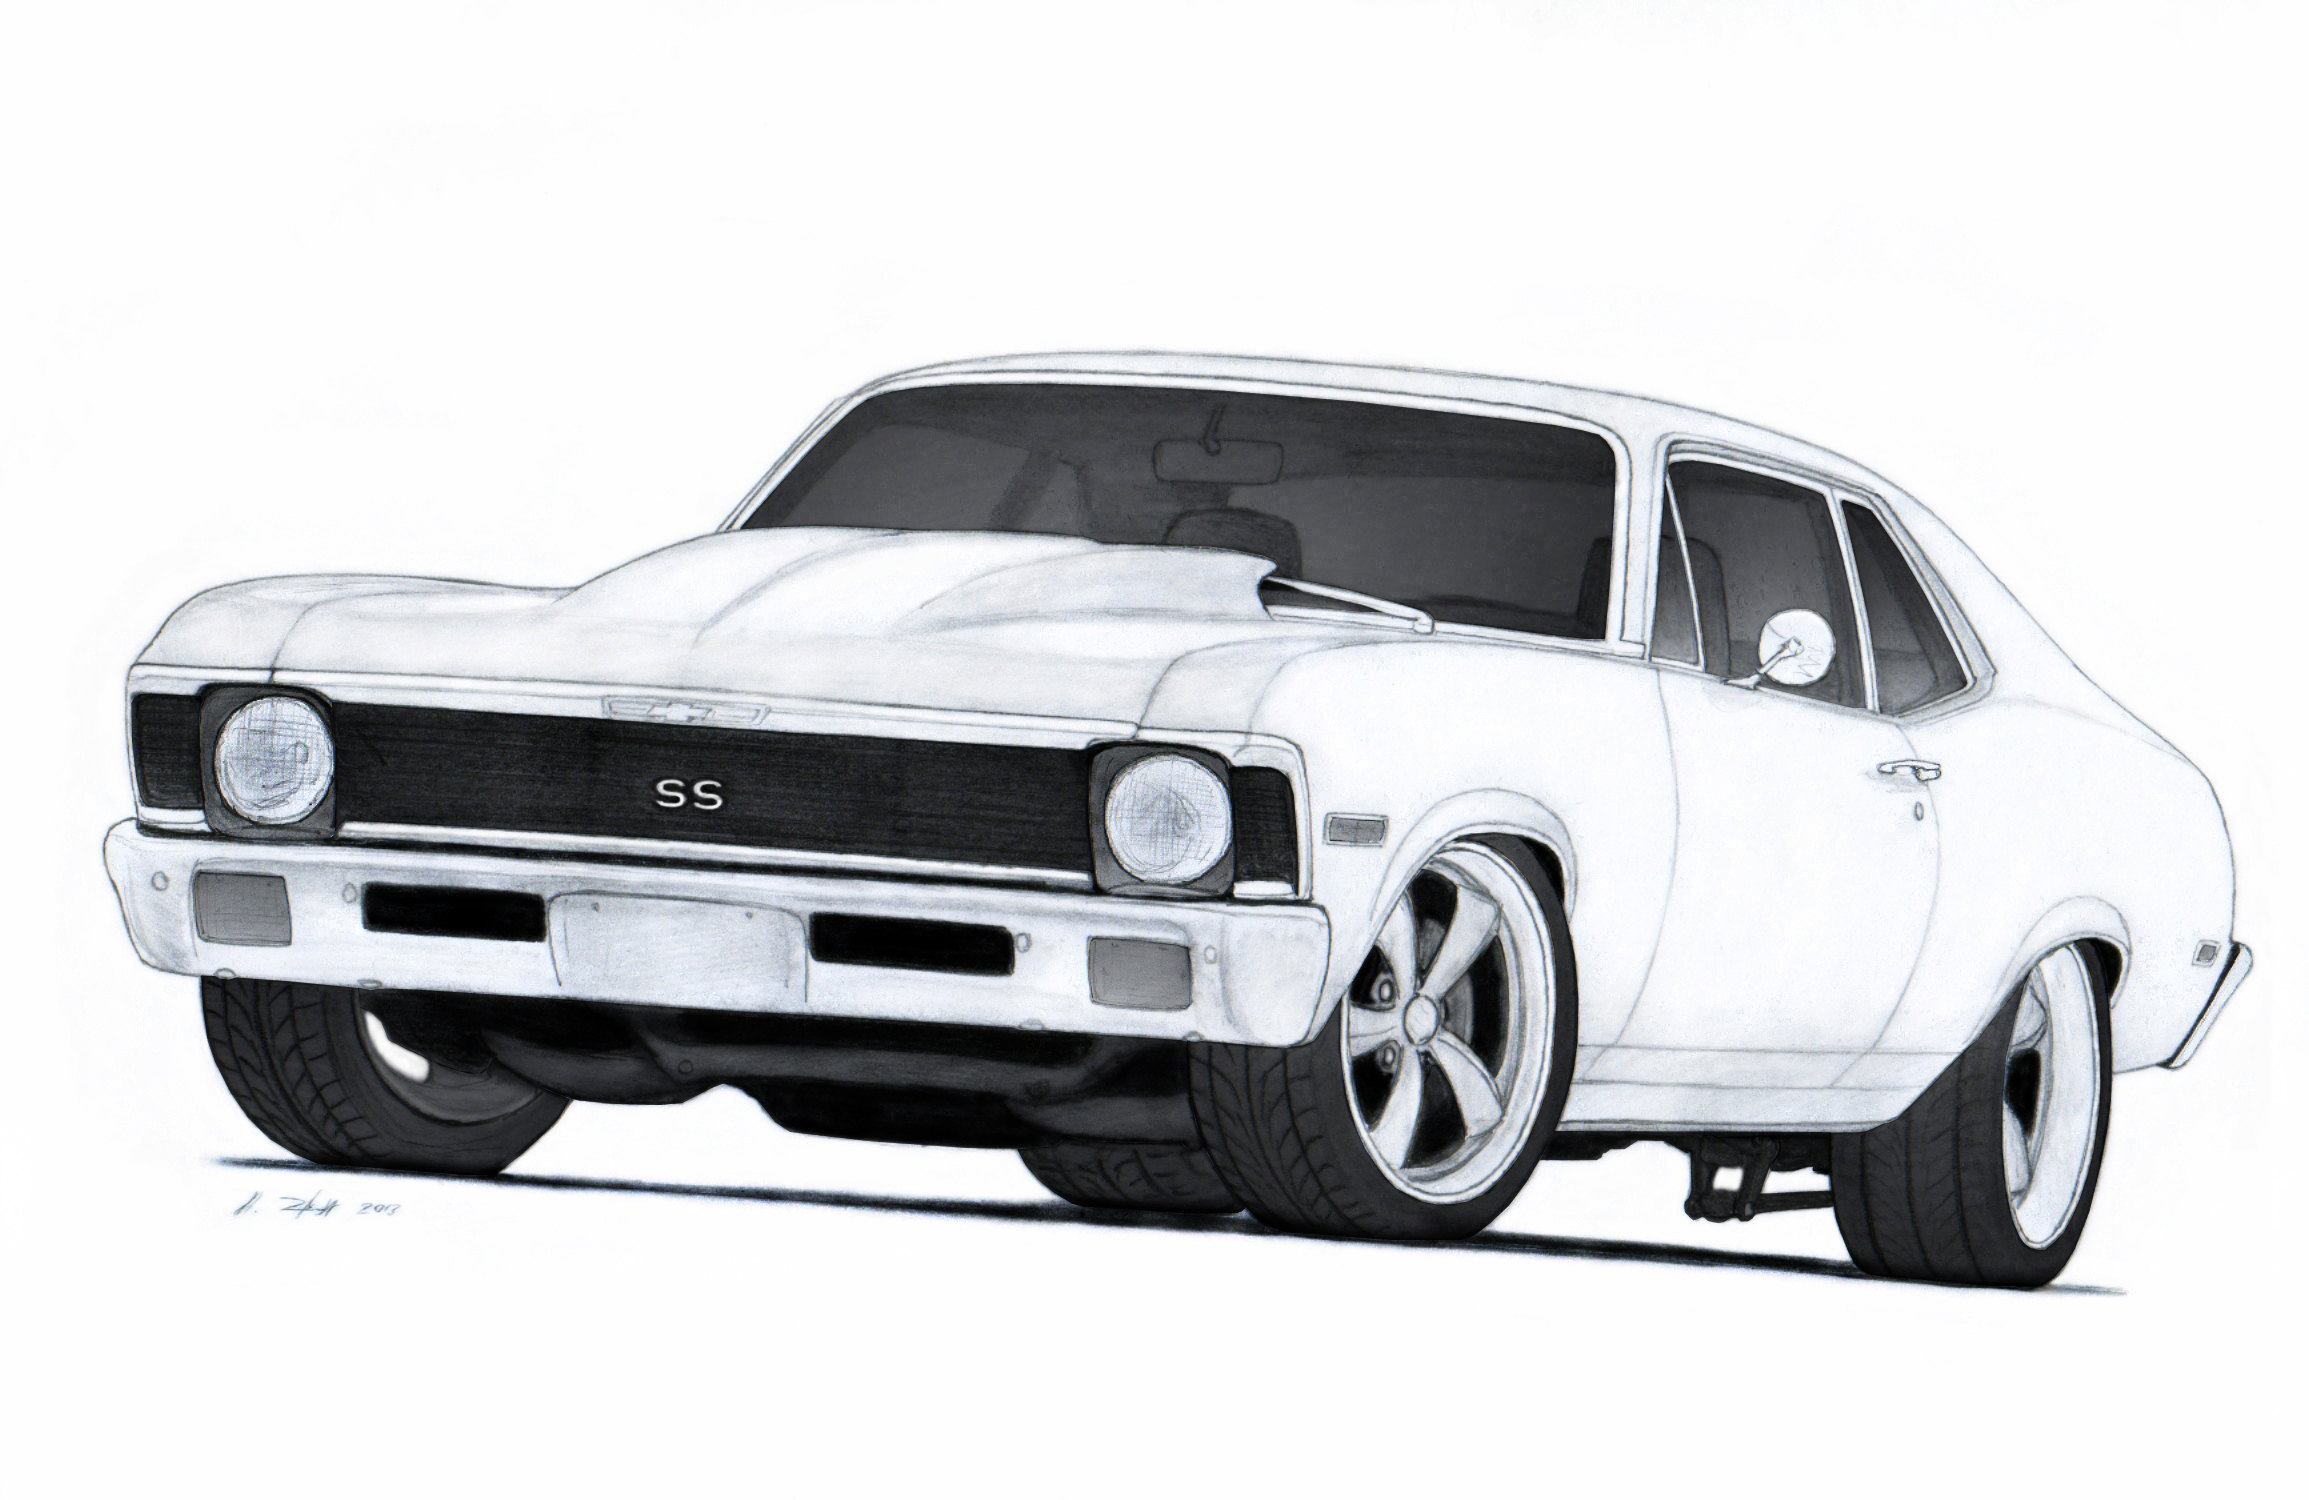 Drawn vehicle chevrolet Chevrolet SS 72 Touring by